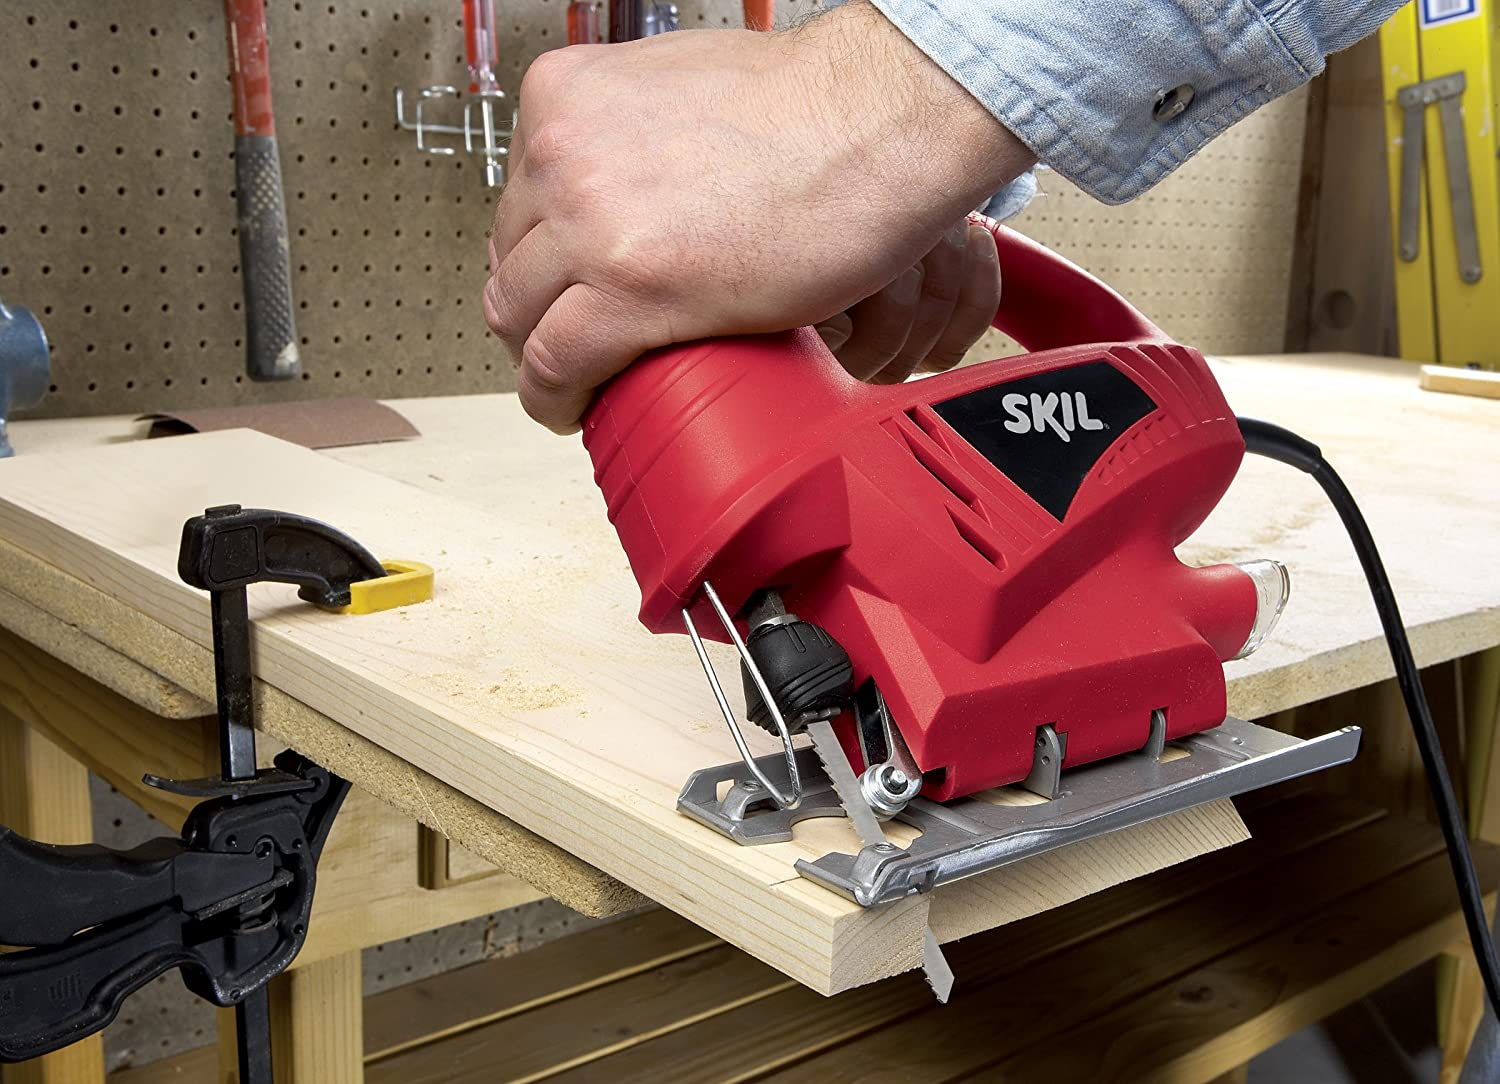 Skil 4290 02 45 amp variable speed jig saw power jig saws skil 4290 02 45 amp variable speed jig saw power jig saws amazon greentooth Choice Image